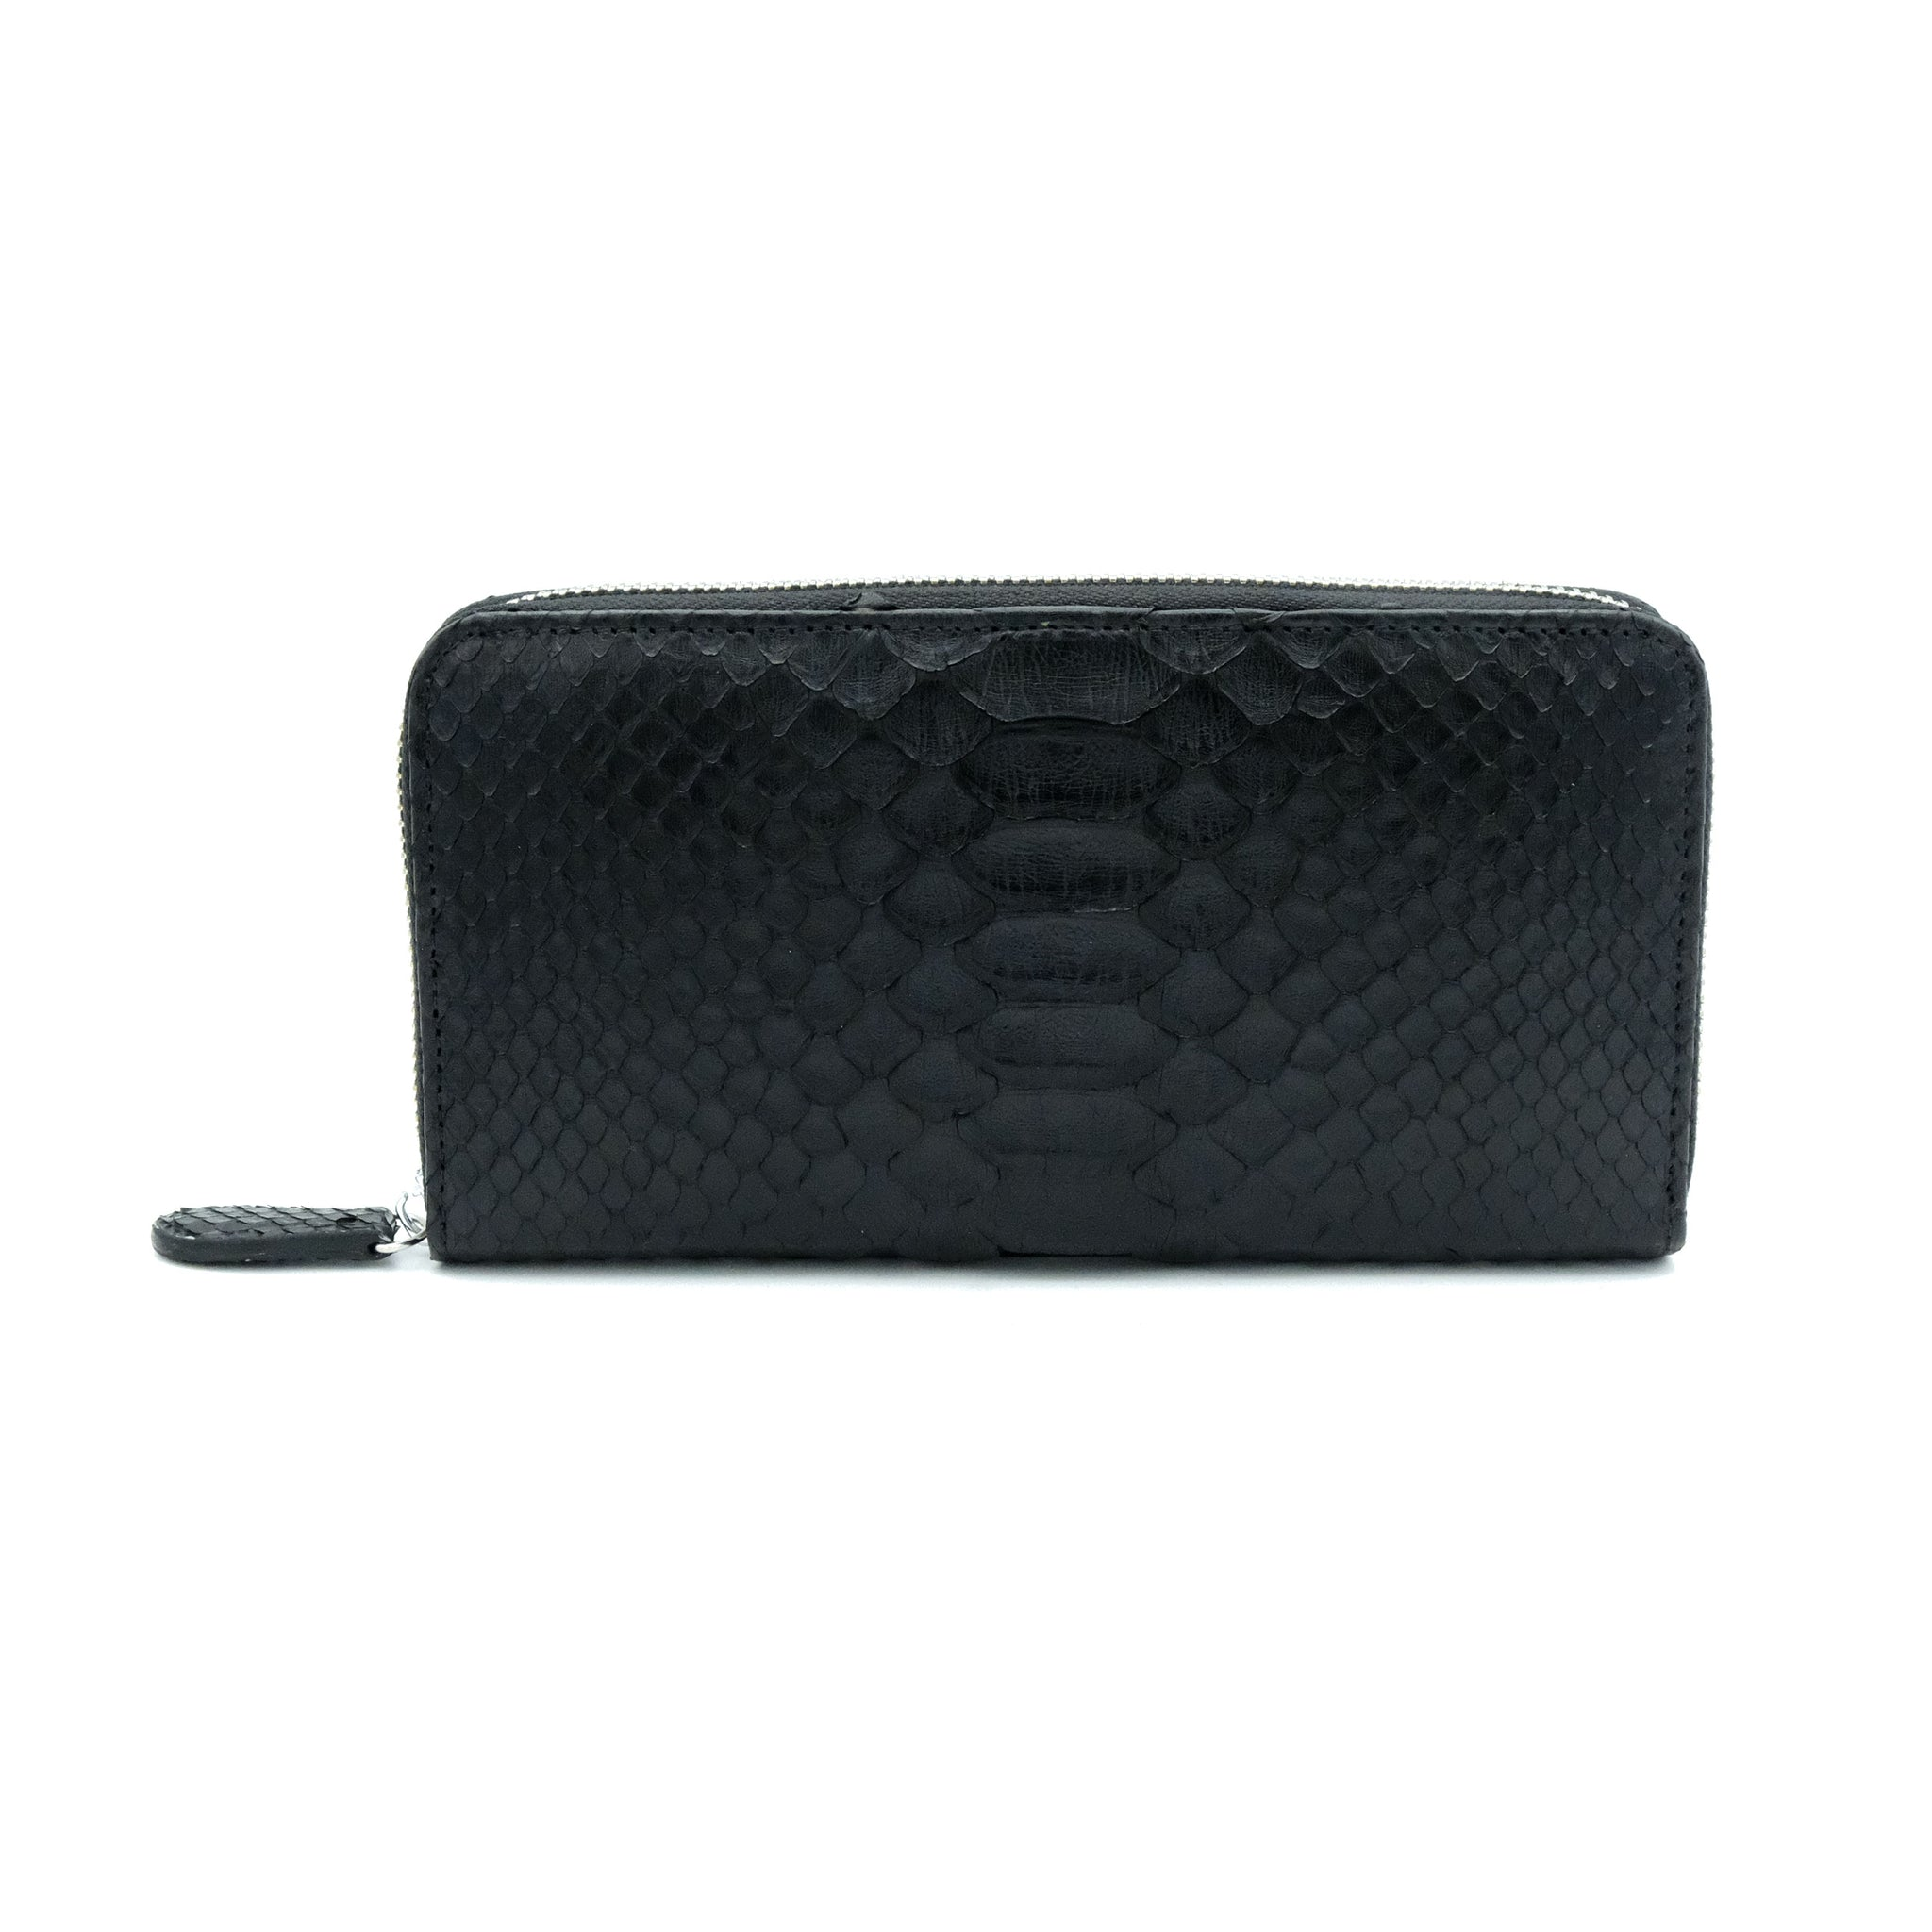 Silom Onyx Women's Long Wallet